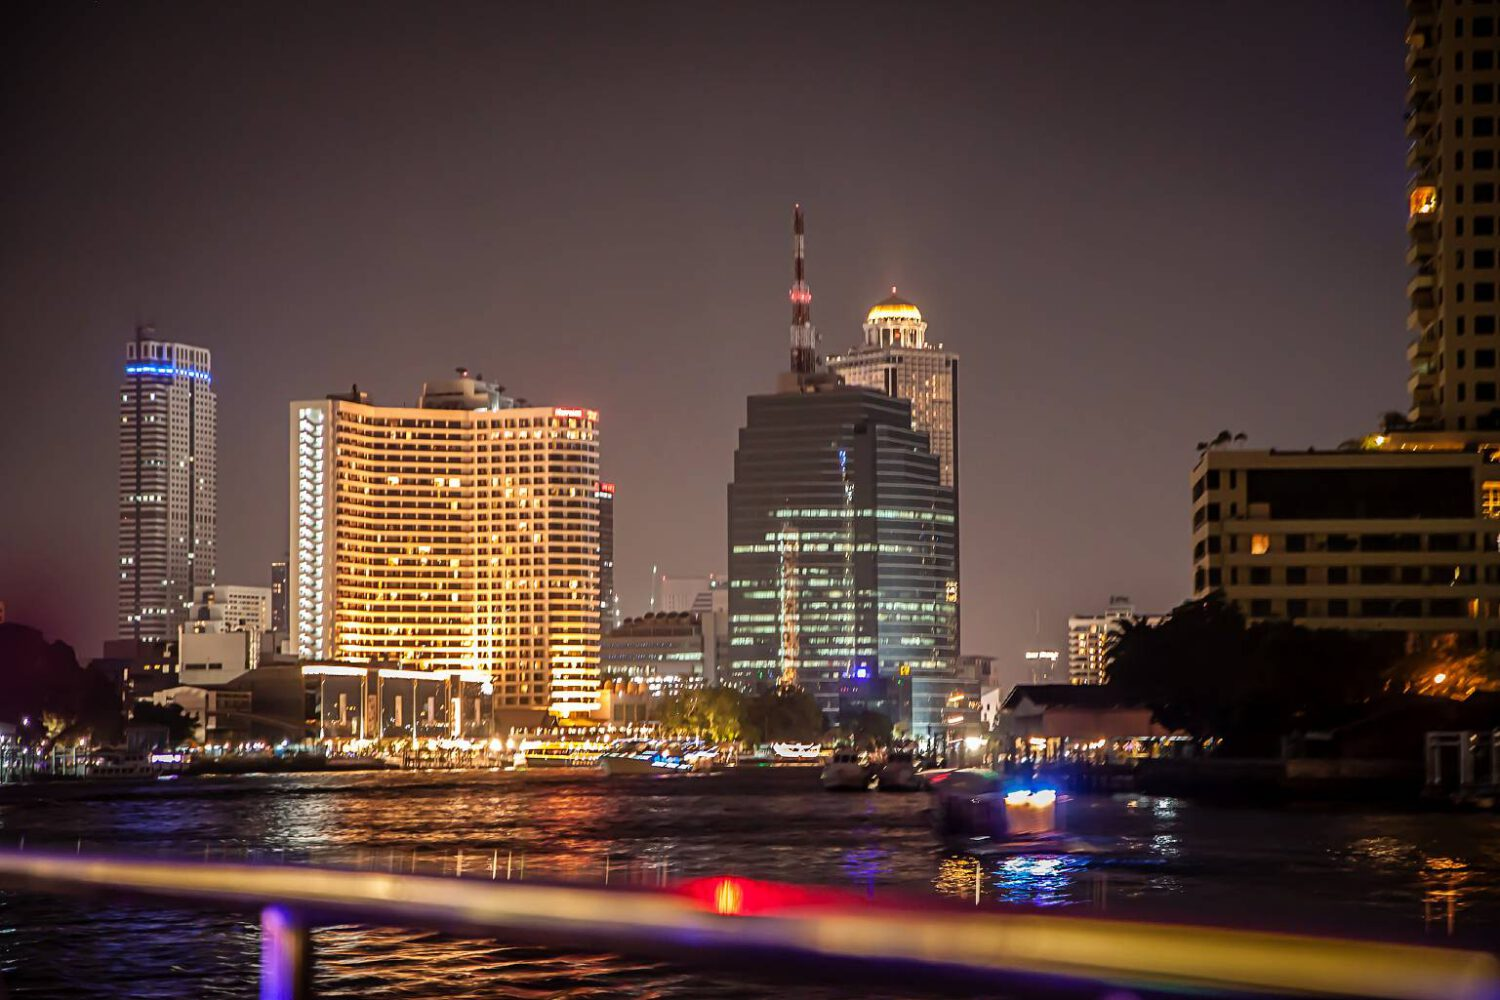 view of illuminated tower blocks from the boat